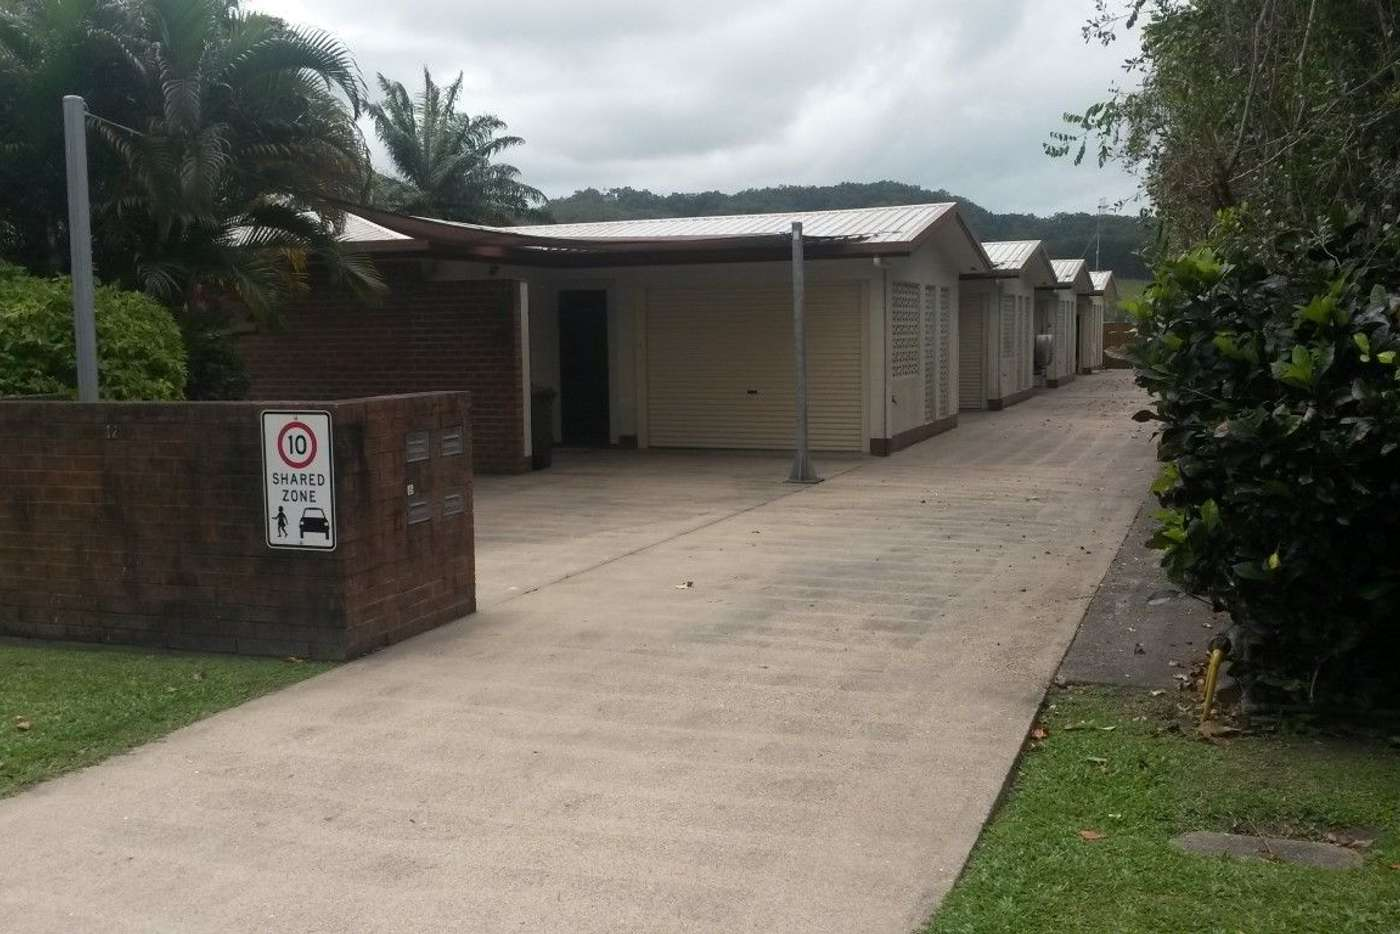 Main view of Homely house listing, 4/12 Atherton Street, Mossman QLD 4873